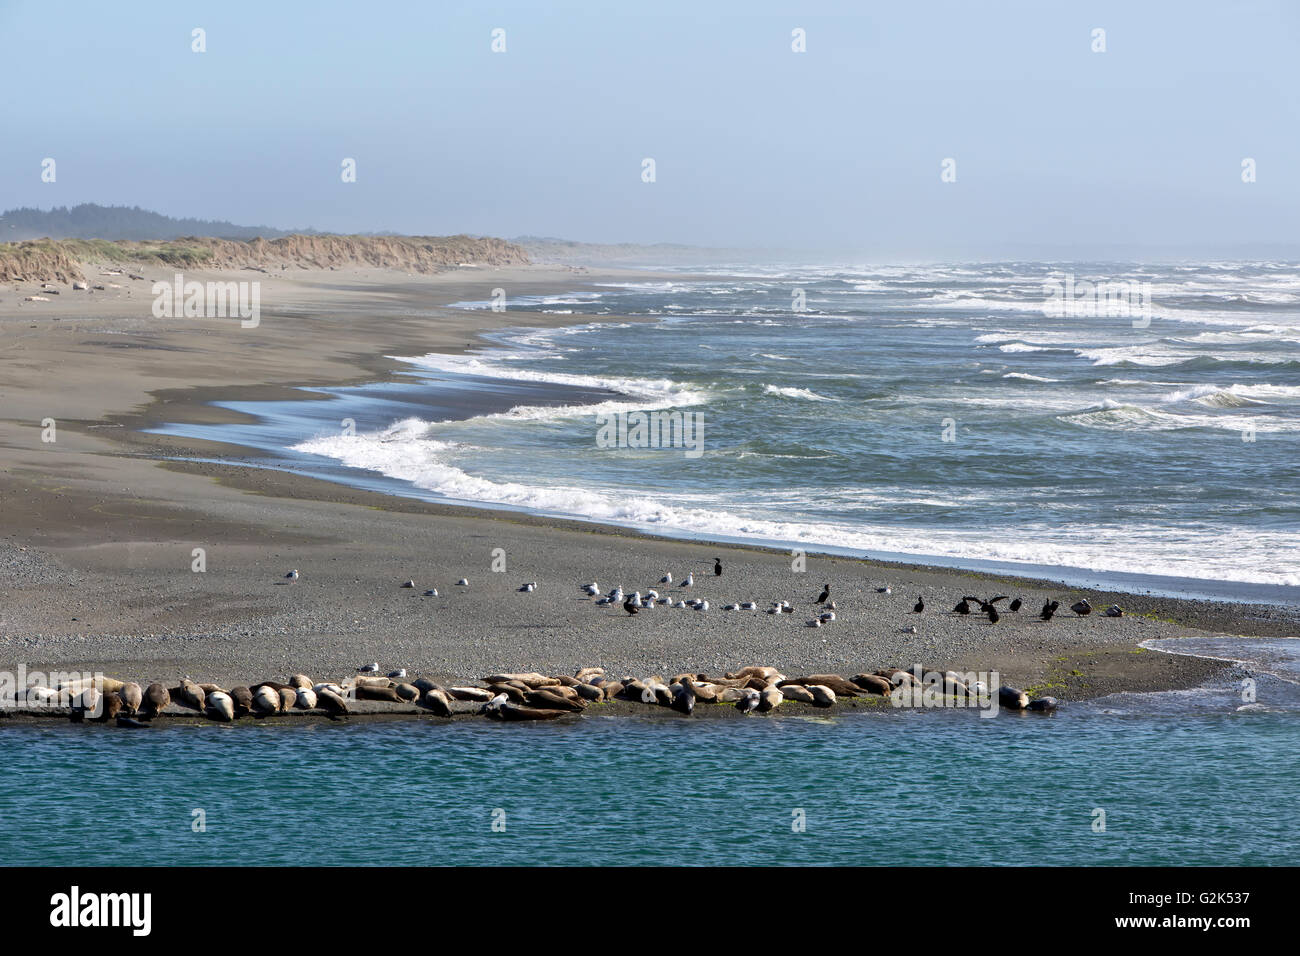 Mouth of the Smith River, Pacific ocean, harbor seals, sea lions, seagulls & double crested cormorants resting - Stock Image